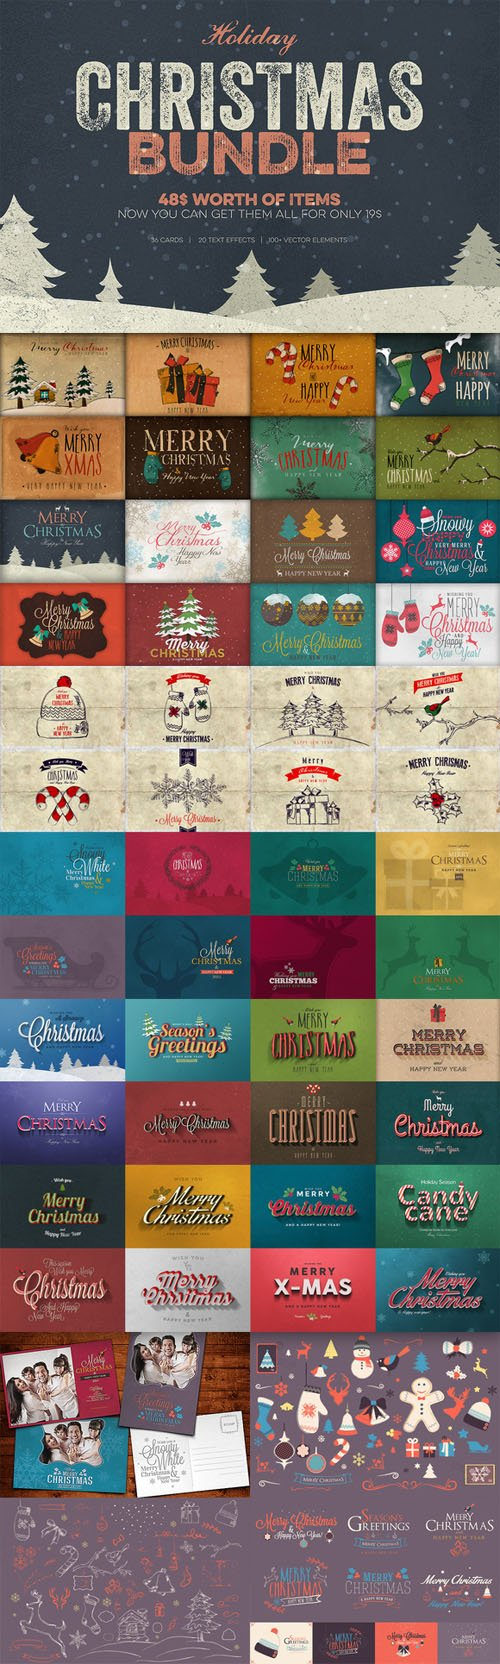 Christmas Bundle - Creativemarket 125627